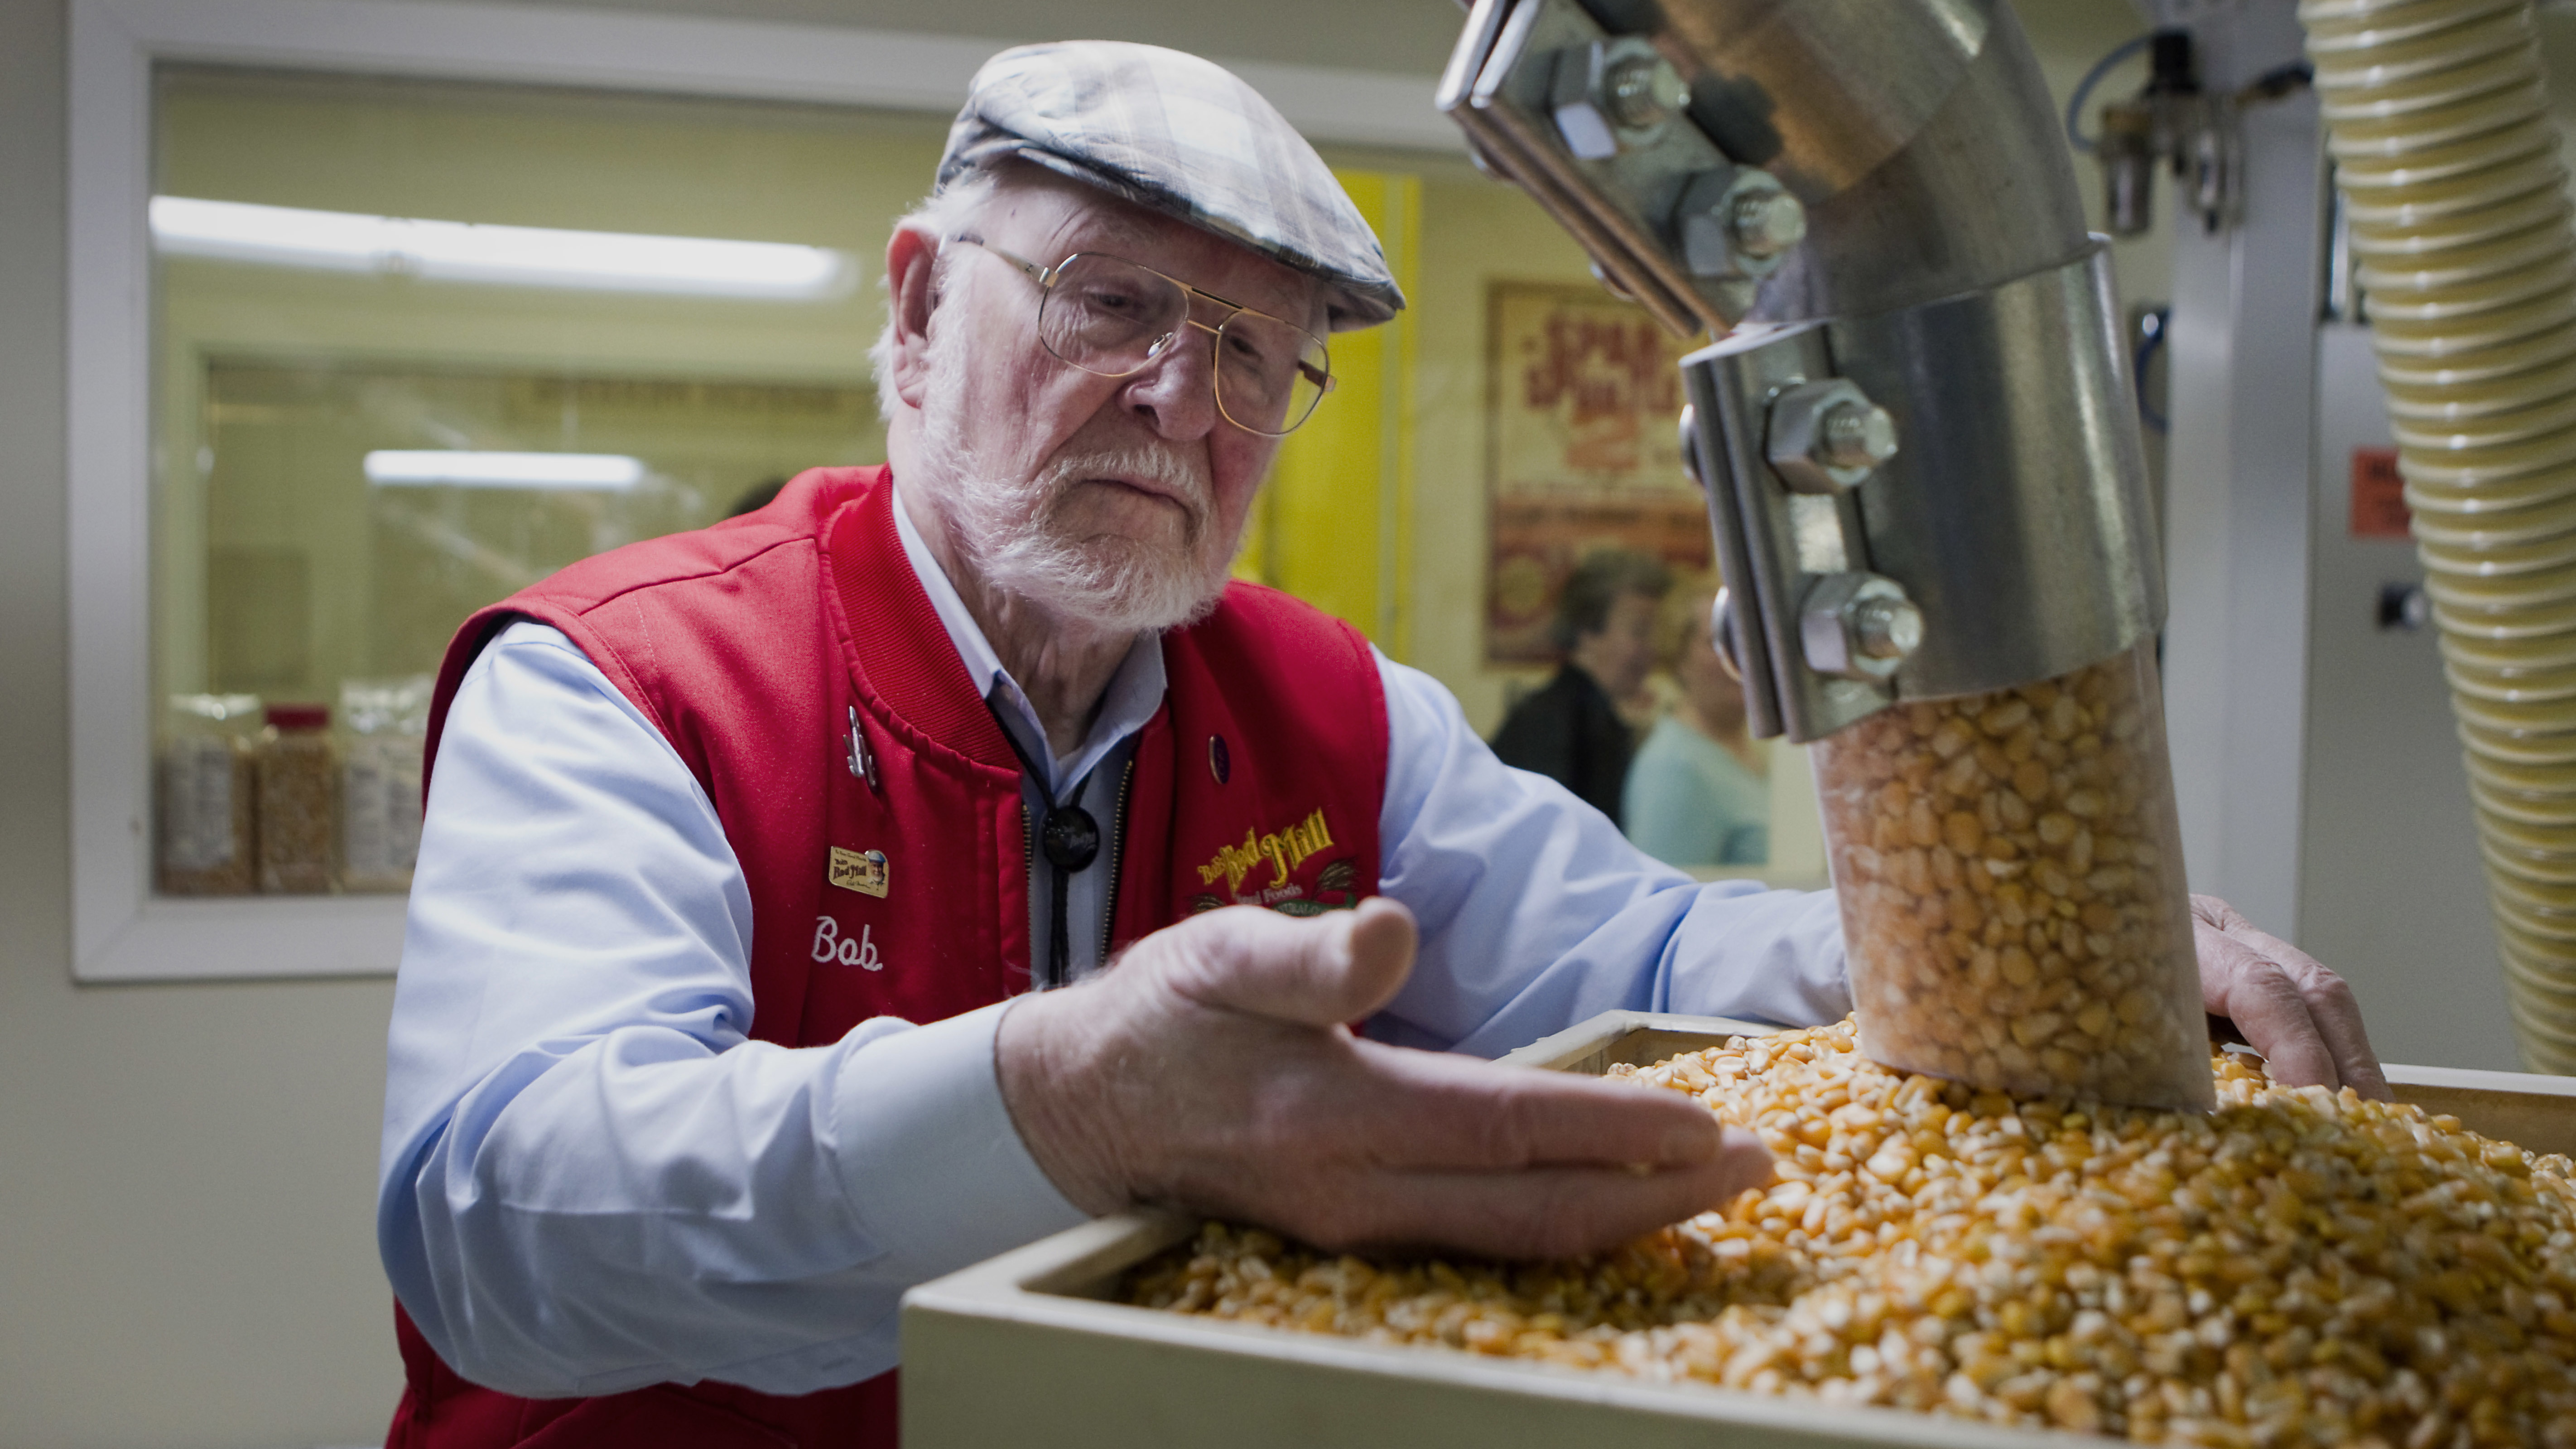 Bob Moore, founder of Bob's Red Mill Natural Foods, inspects grains at the company's facility in Milwaukie, Ore. The pioneering manufacturer of gluten-free products invests in whole grains as well as beans, seeds, nuts, dried fruits, spices and herbs. (Natalie Behring/Bloomberg via Getty Images)